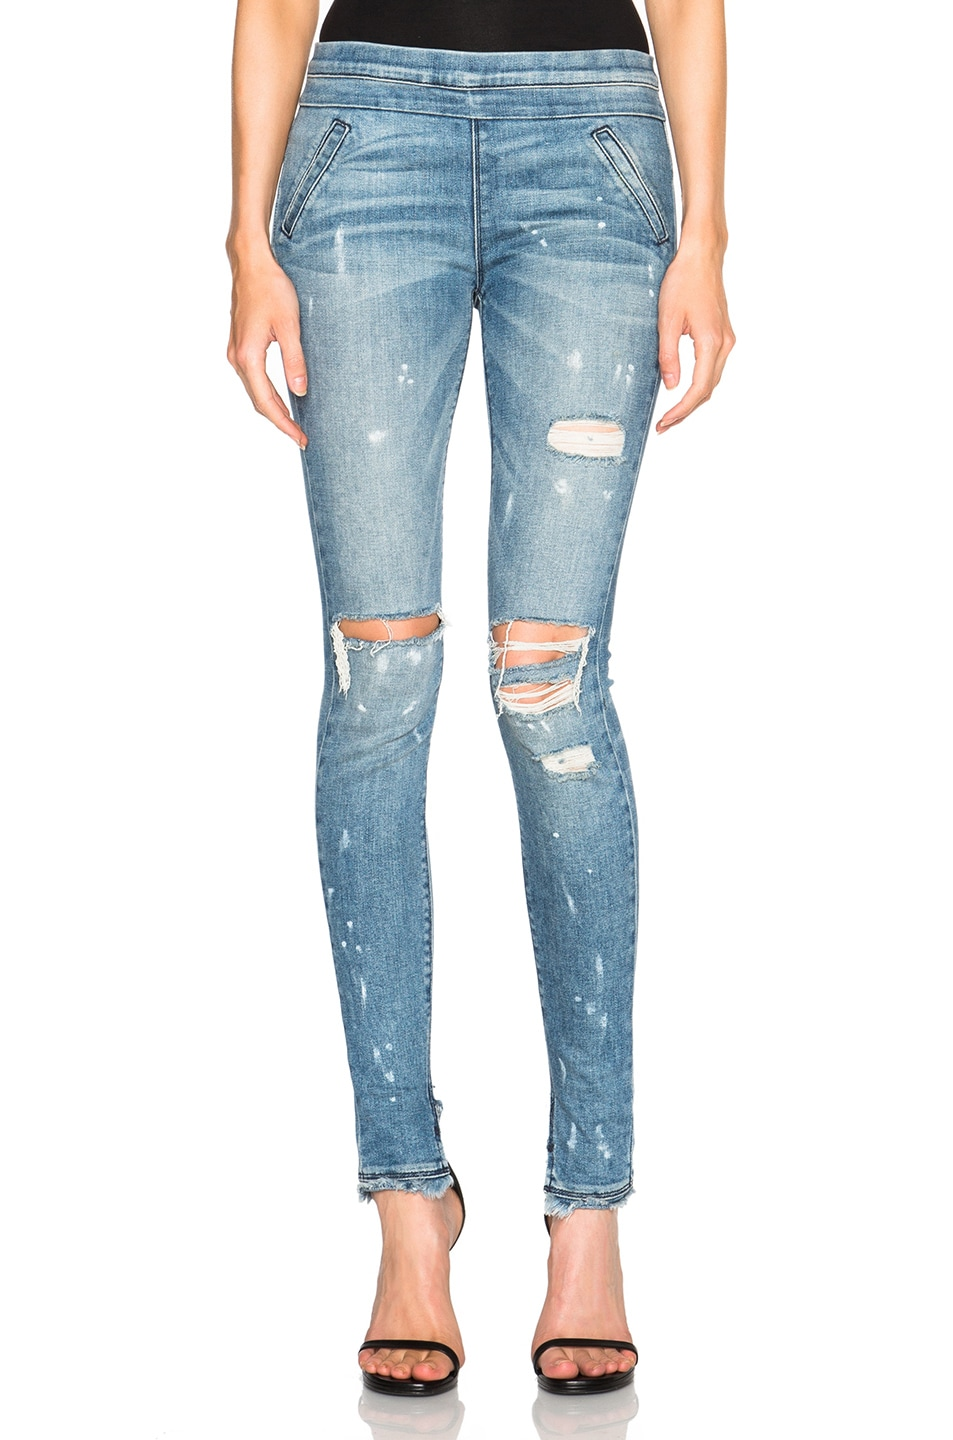 Good Selling Online Sonia Pants in Blue Rta Outlet 2018 Unisex UYLQl